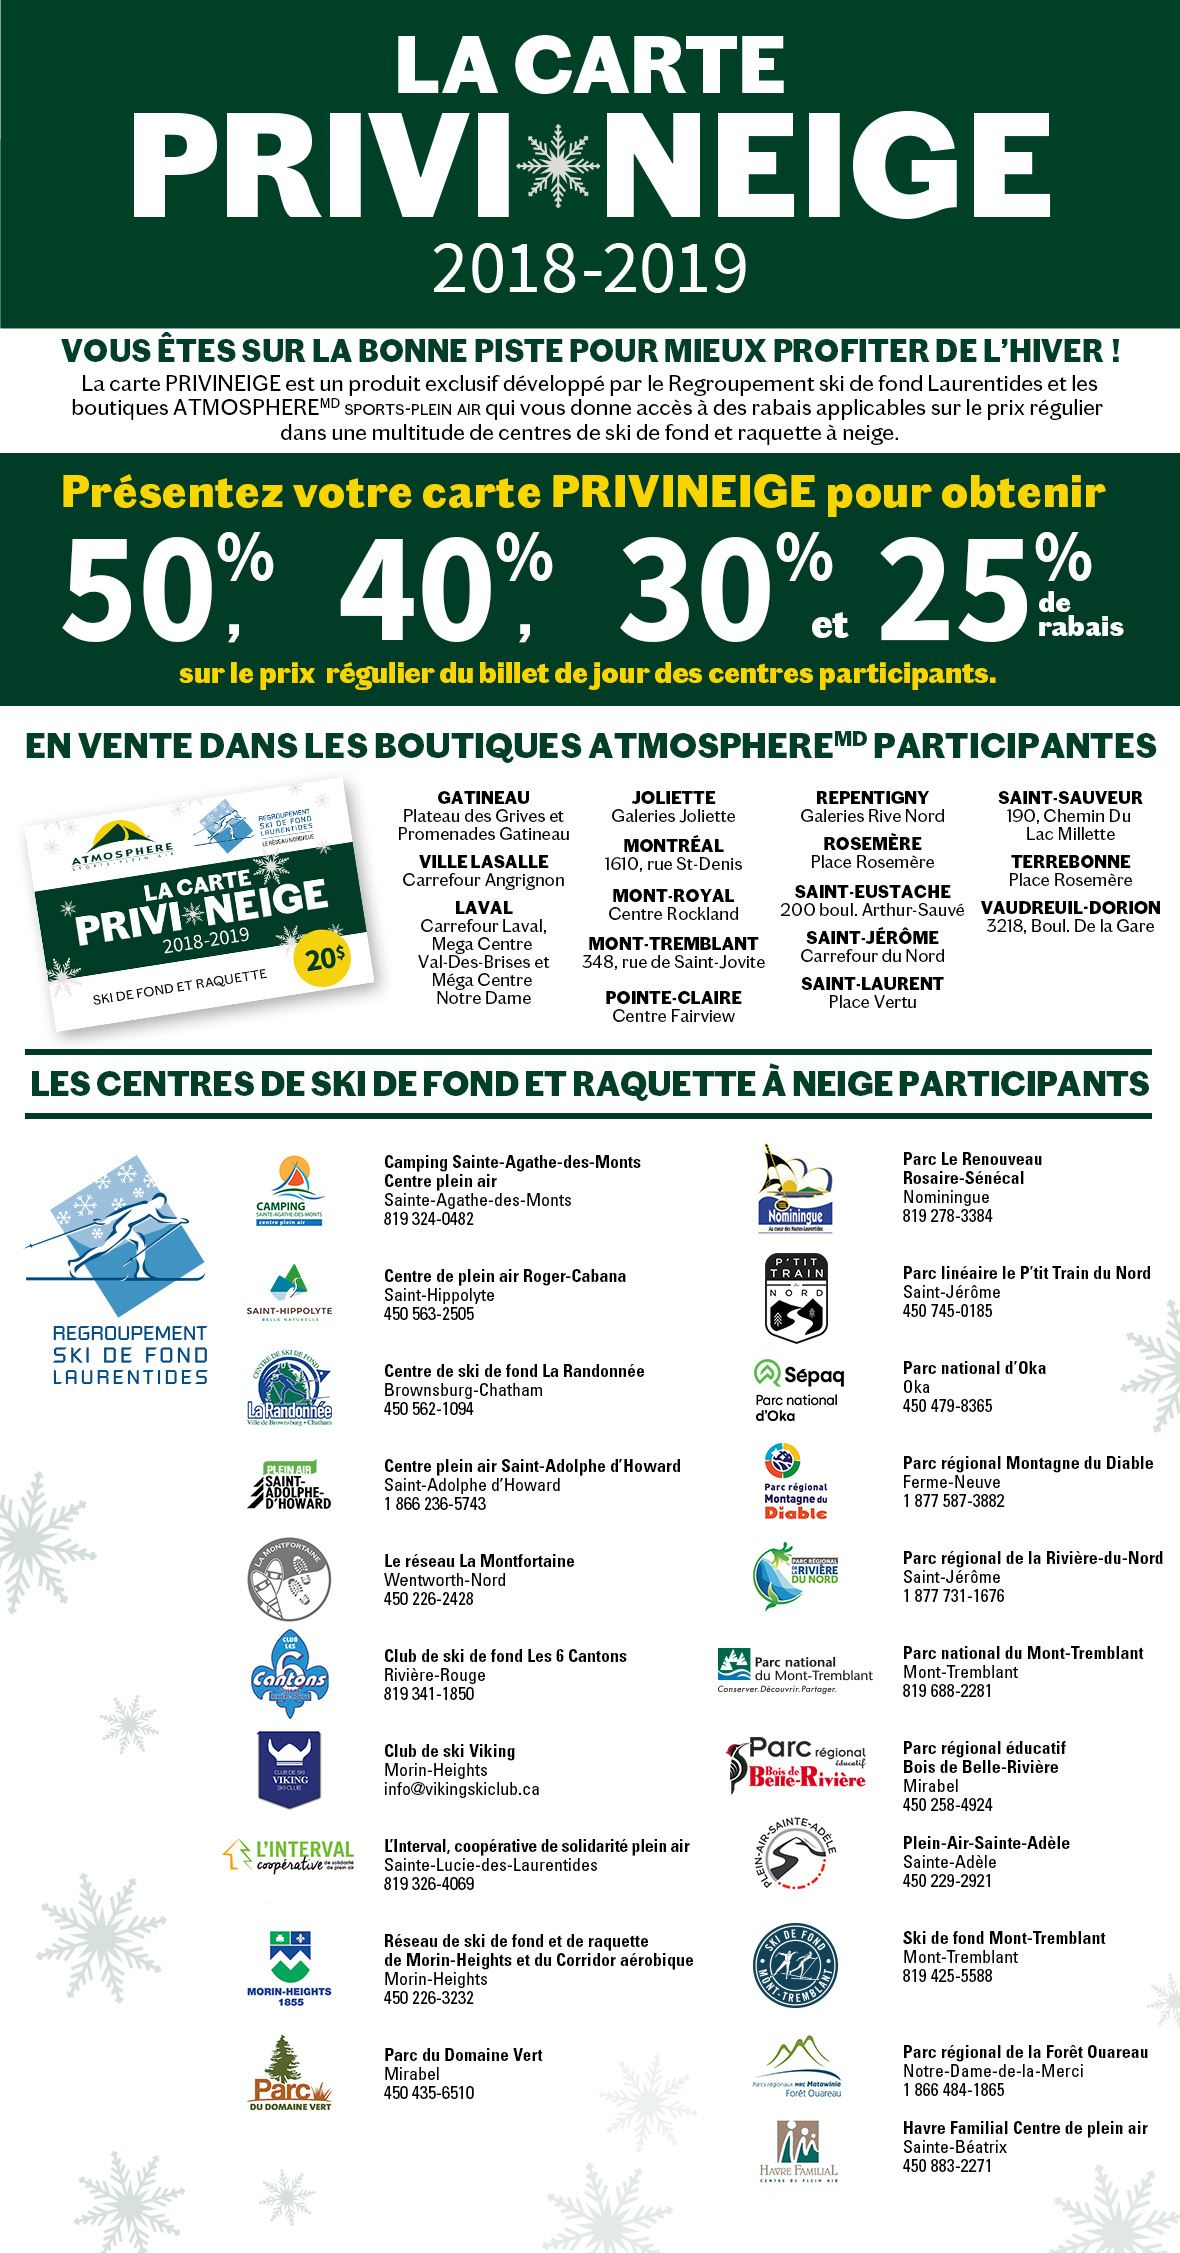 carte privi-neige 2018-2019